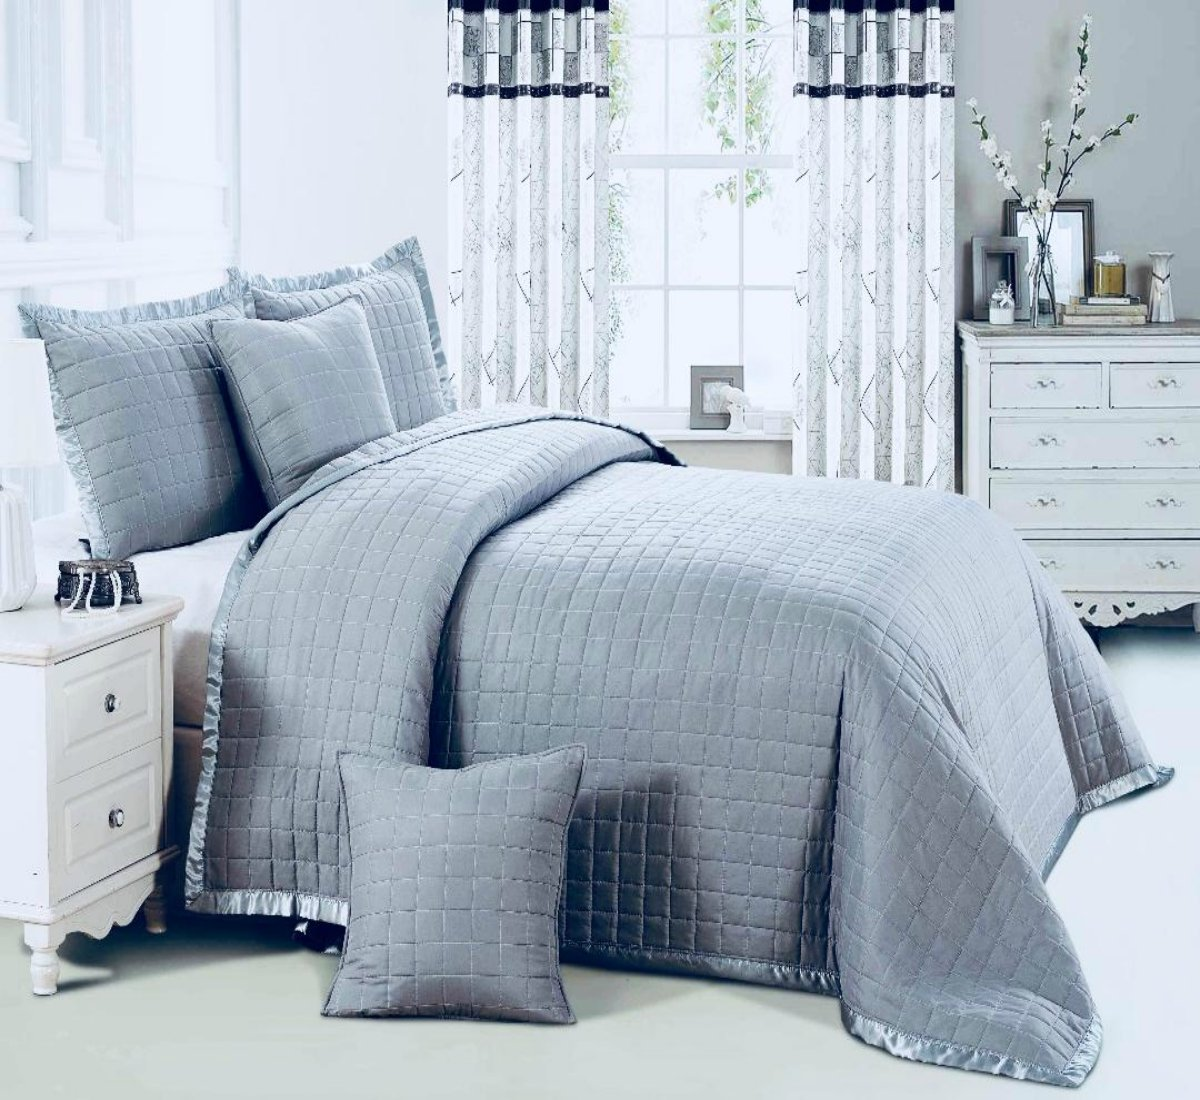 3 Pieces Osca Bedspread Comforter Border Quilted Bed Throw (White, Double) PL